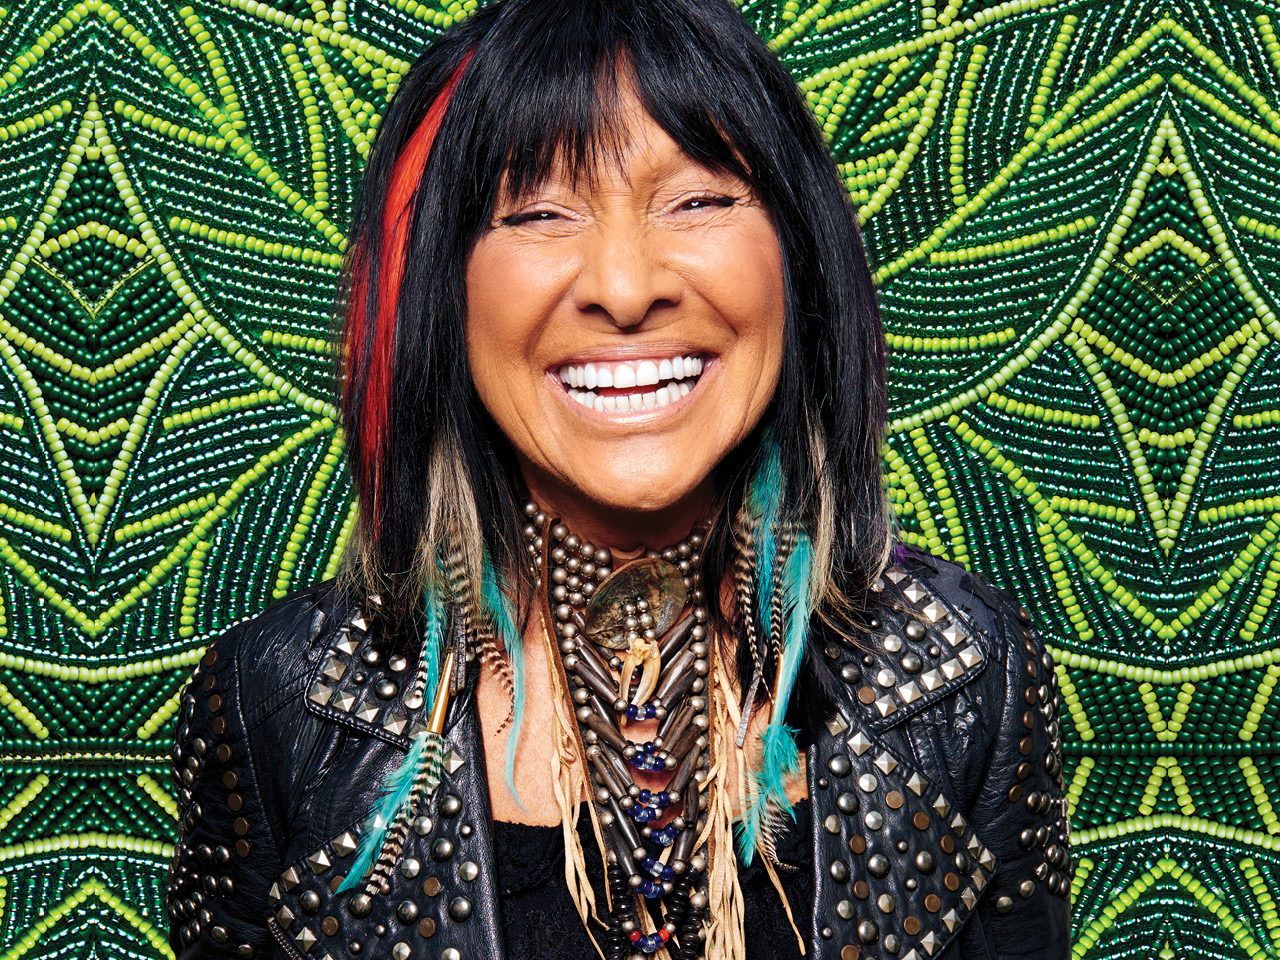 A photo of Buffy Sainte-Marie against a green beaded backdrop by Katie Longboat